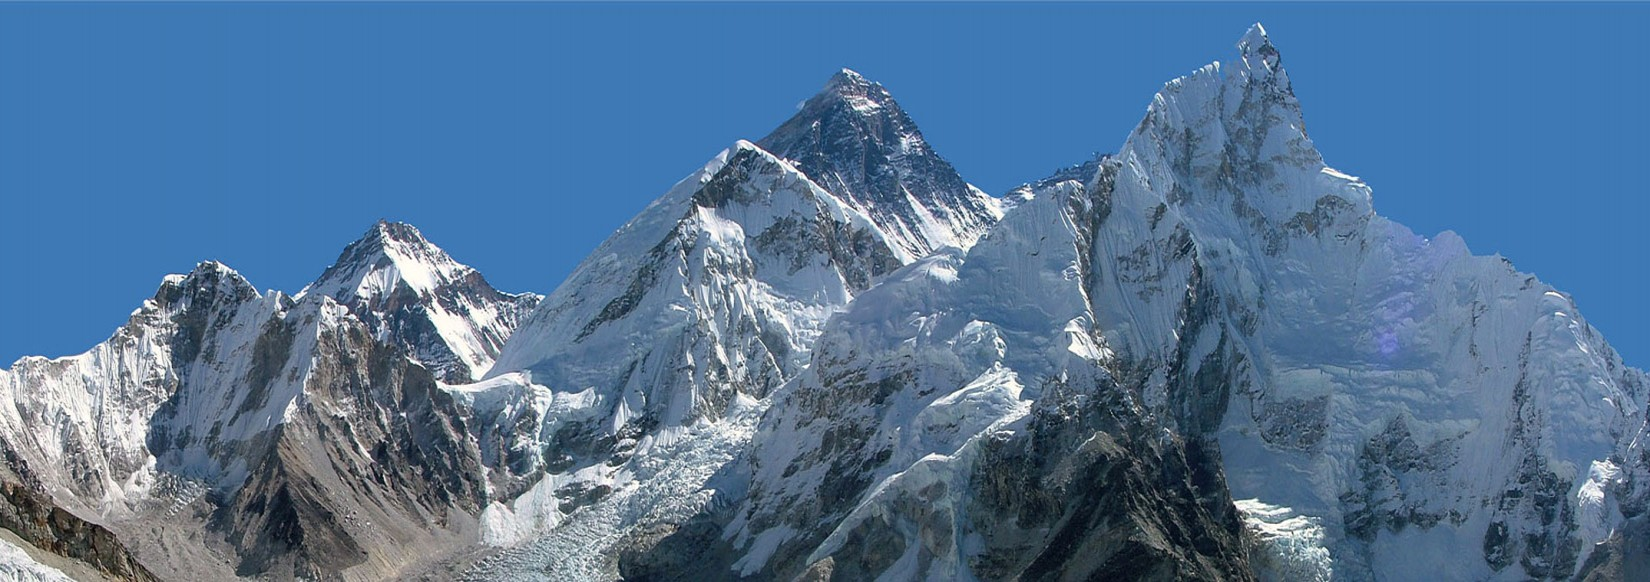 Gorgeousness of Mt. Everest and its Surroundings